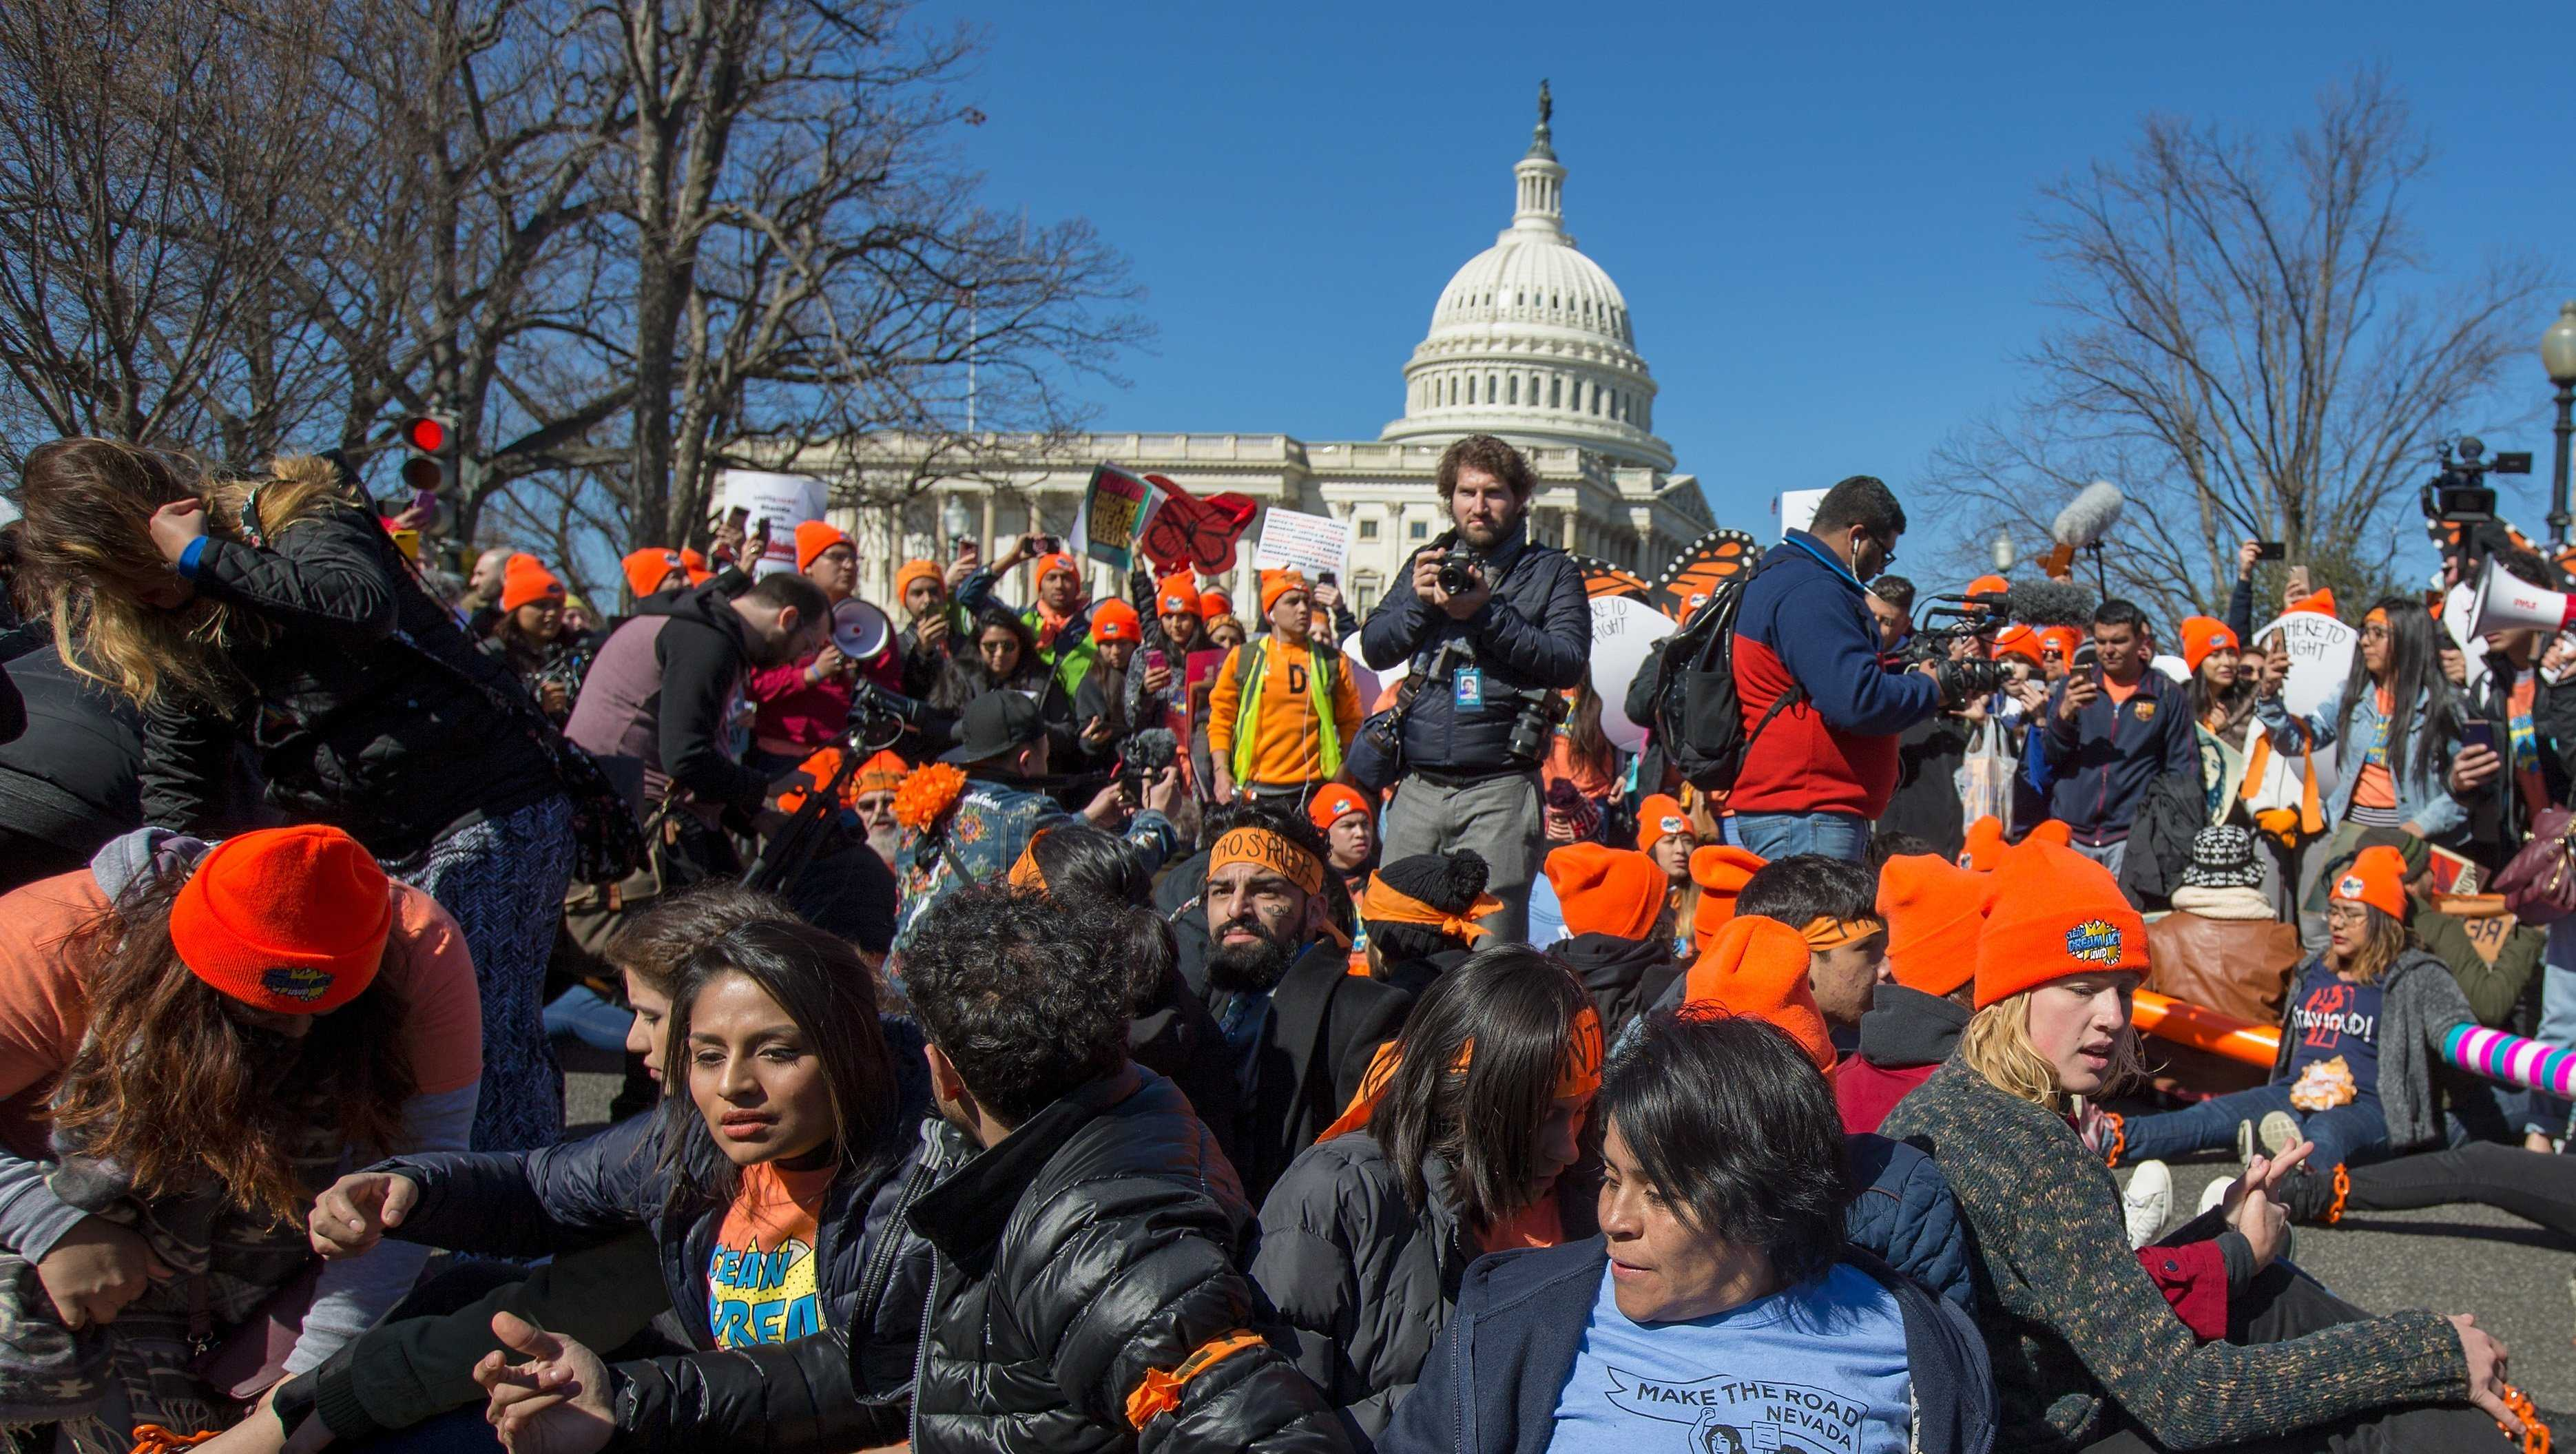 Pro DACA and Dreamer supporters chain themselves to each other outside the US Capital on March 5, 2018 in Washington, DC. 